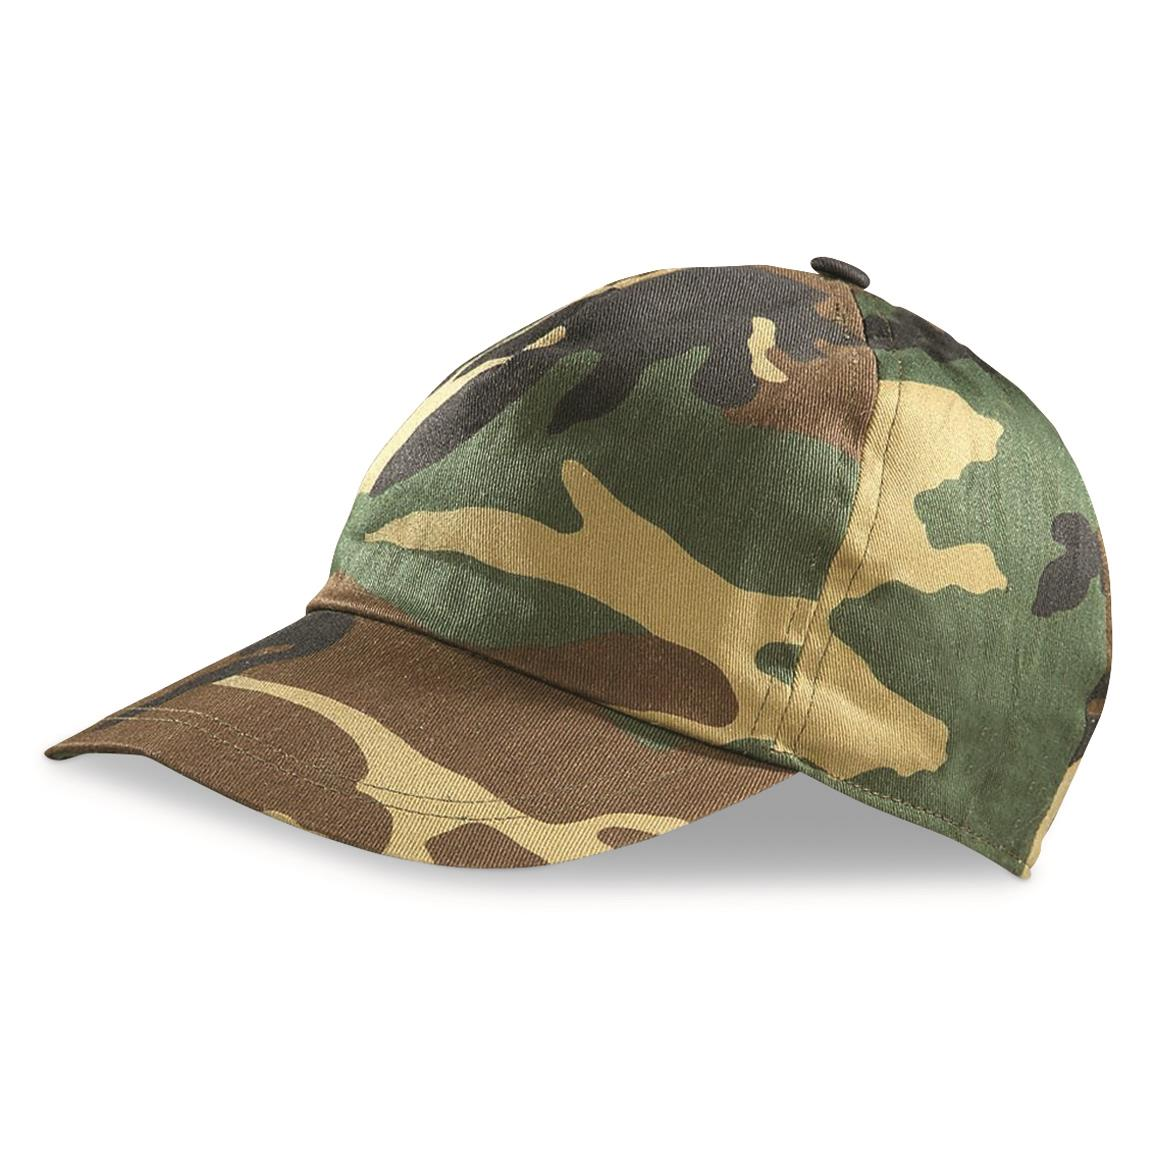 Italian Military Surplus Woodland Caps, 3 Pack, New, Woodland Camo